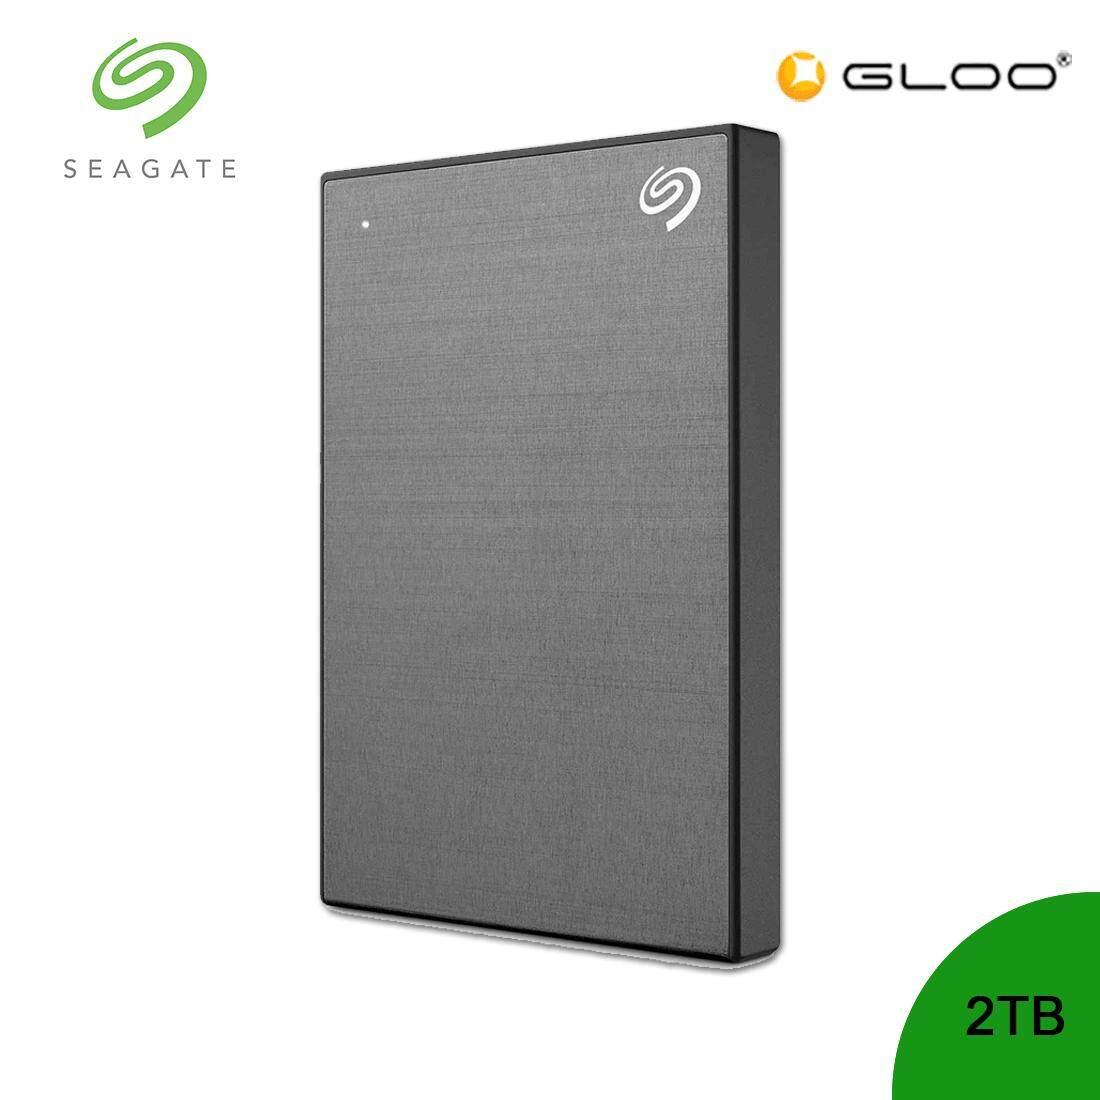 Seagate Backup Plus Portable Drive Space Grey 2TB - STHN2000405